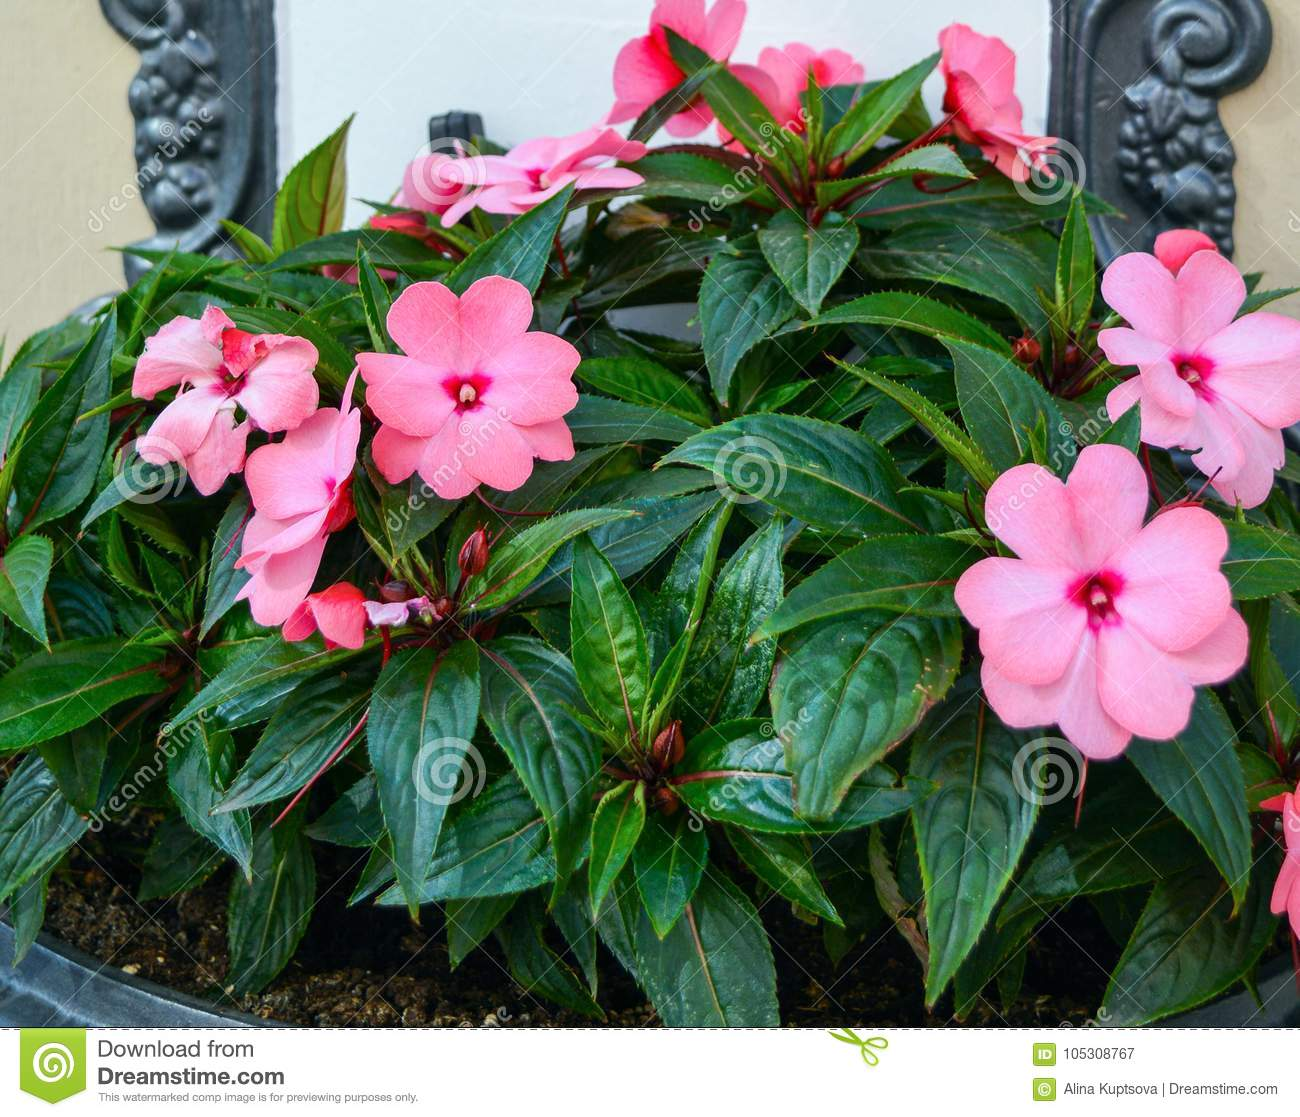 Pink Flowers Of Impatiens In Hanging Flower Bed Stock Image Image